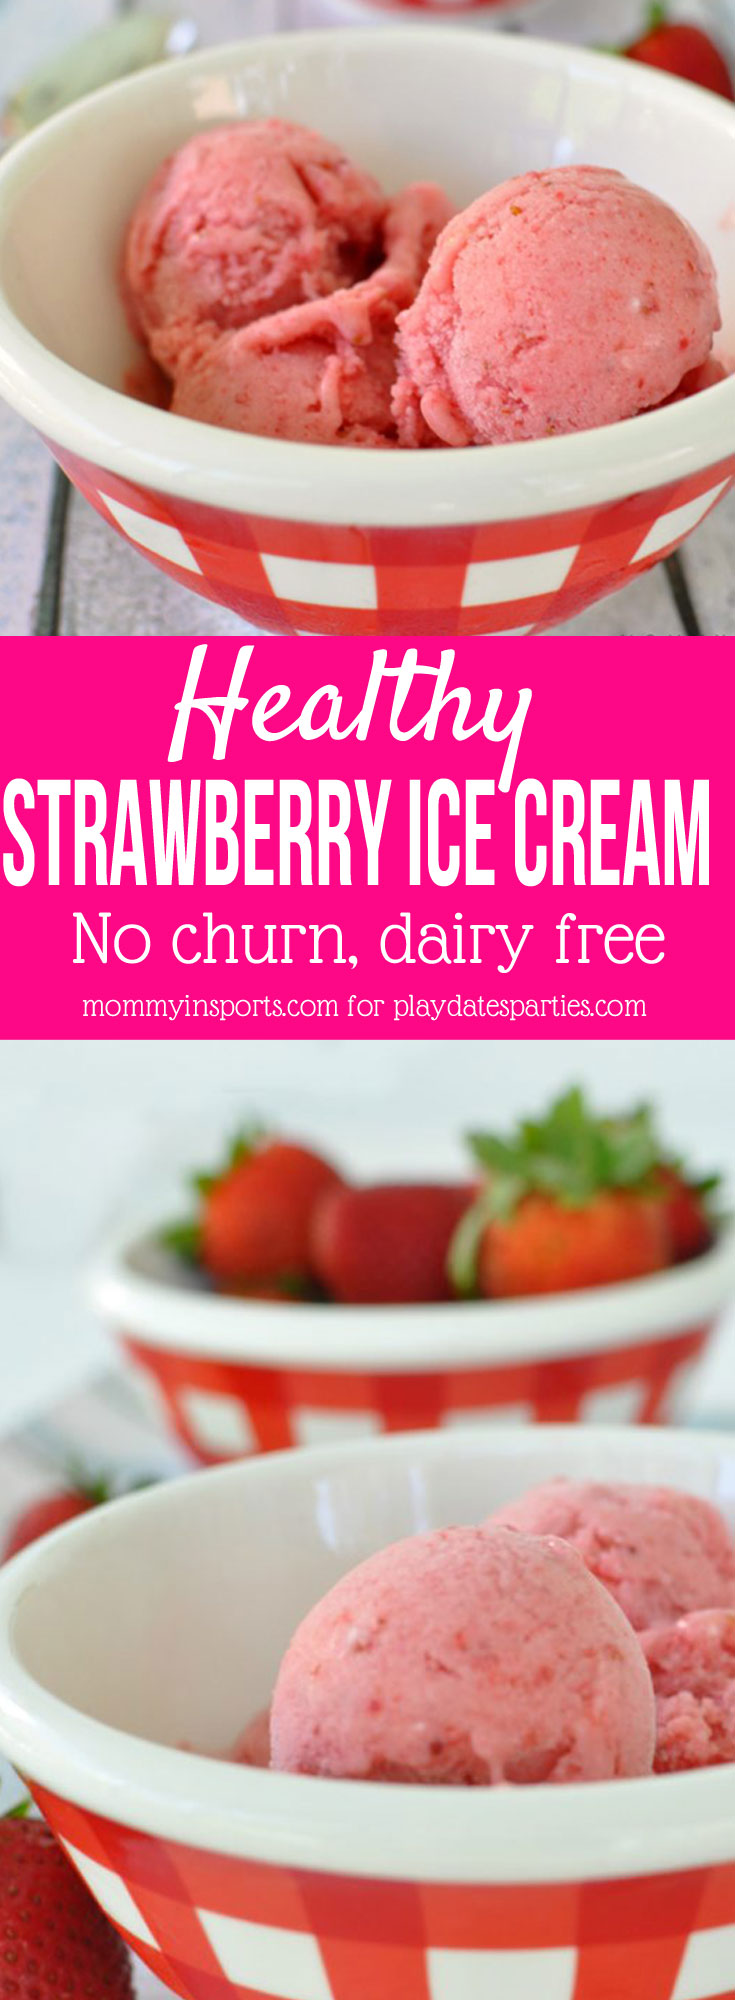 Looking for a simple, delicious, dairy-free, and healthy strawberry ice cream recipe? Combine these 4 ingredients and you'll be eating a fast frozen treat! Perfect for paleo and whole food diets.